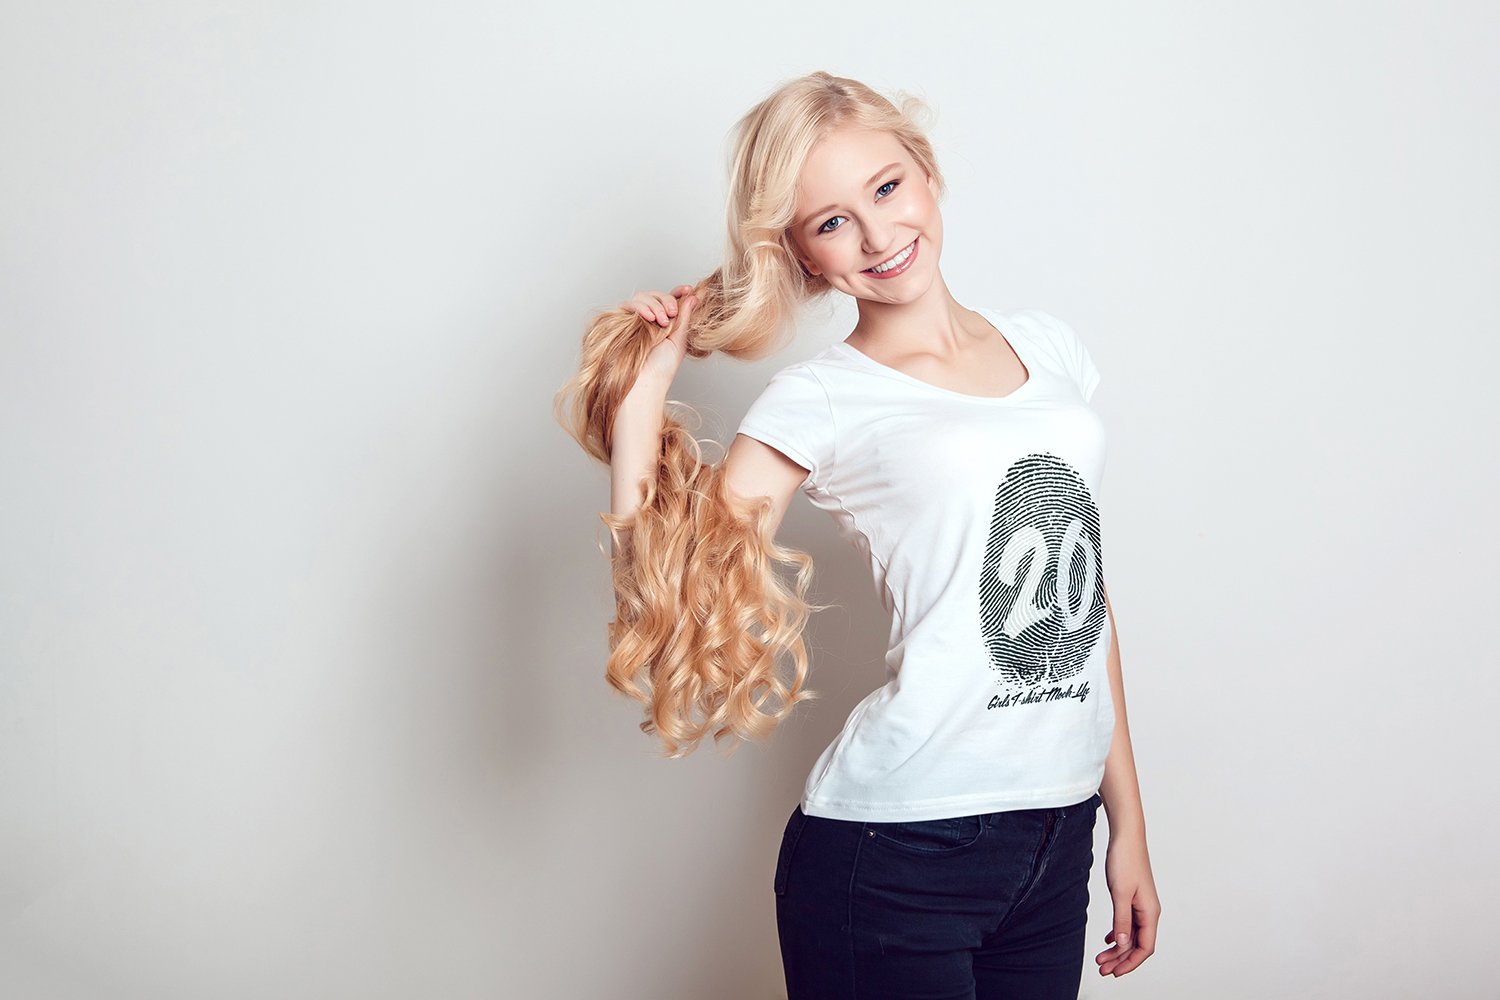 20 Top Girls T-Shirt Mock-Up example image 25